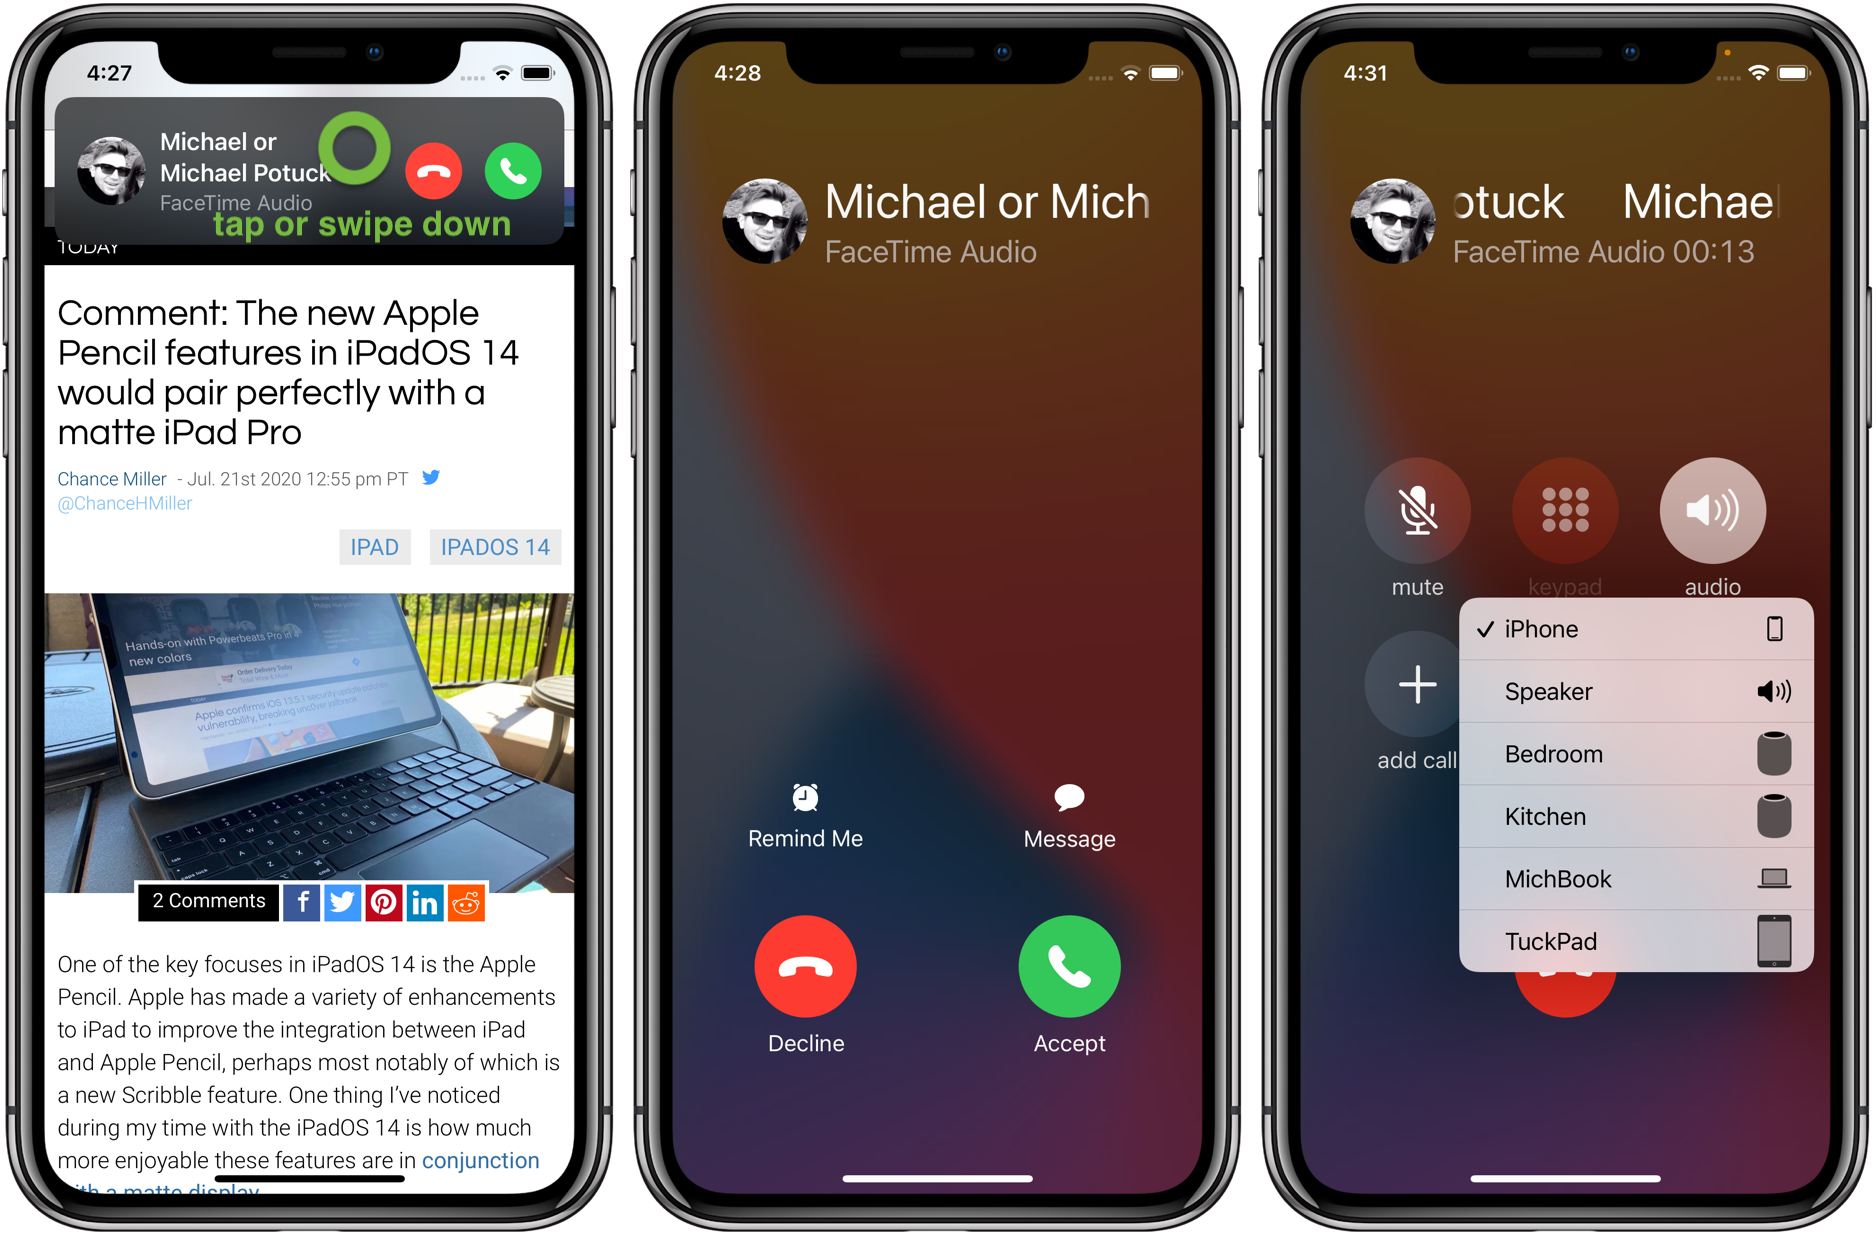 How to use iPhone compact call interface iOS 14 walkthrough 2